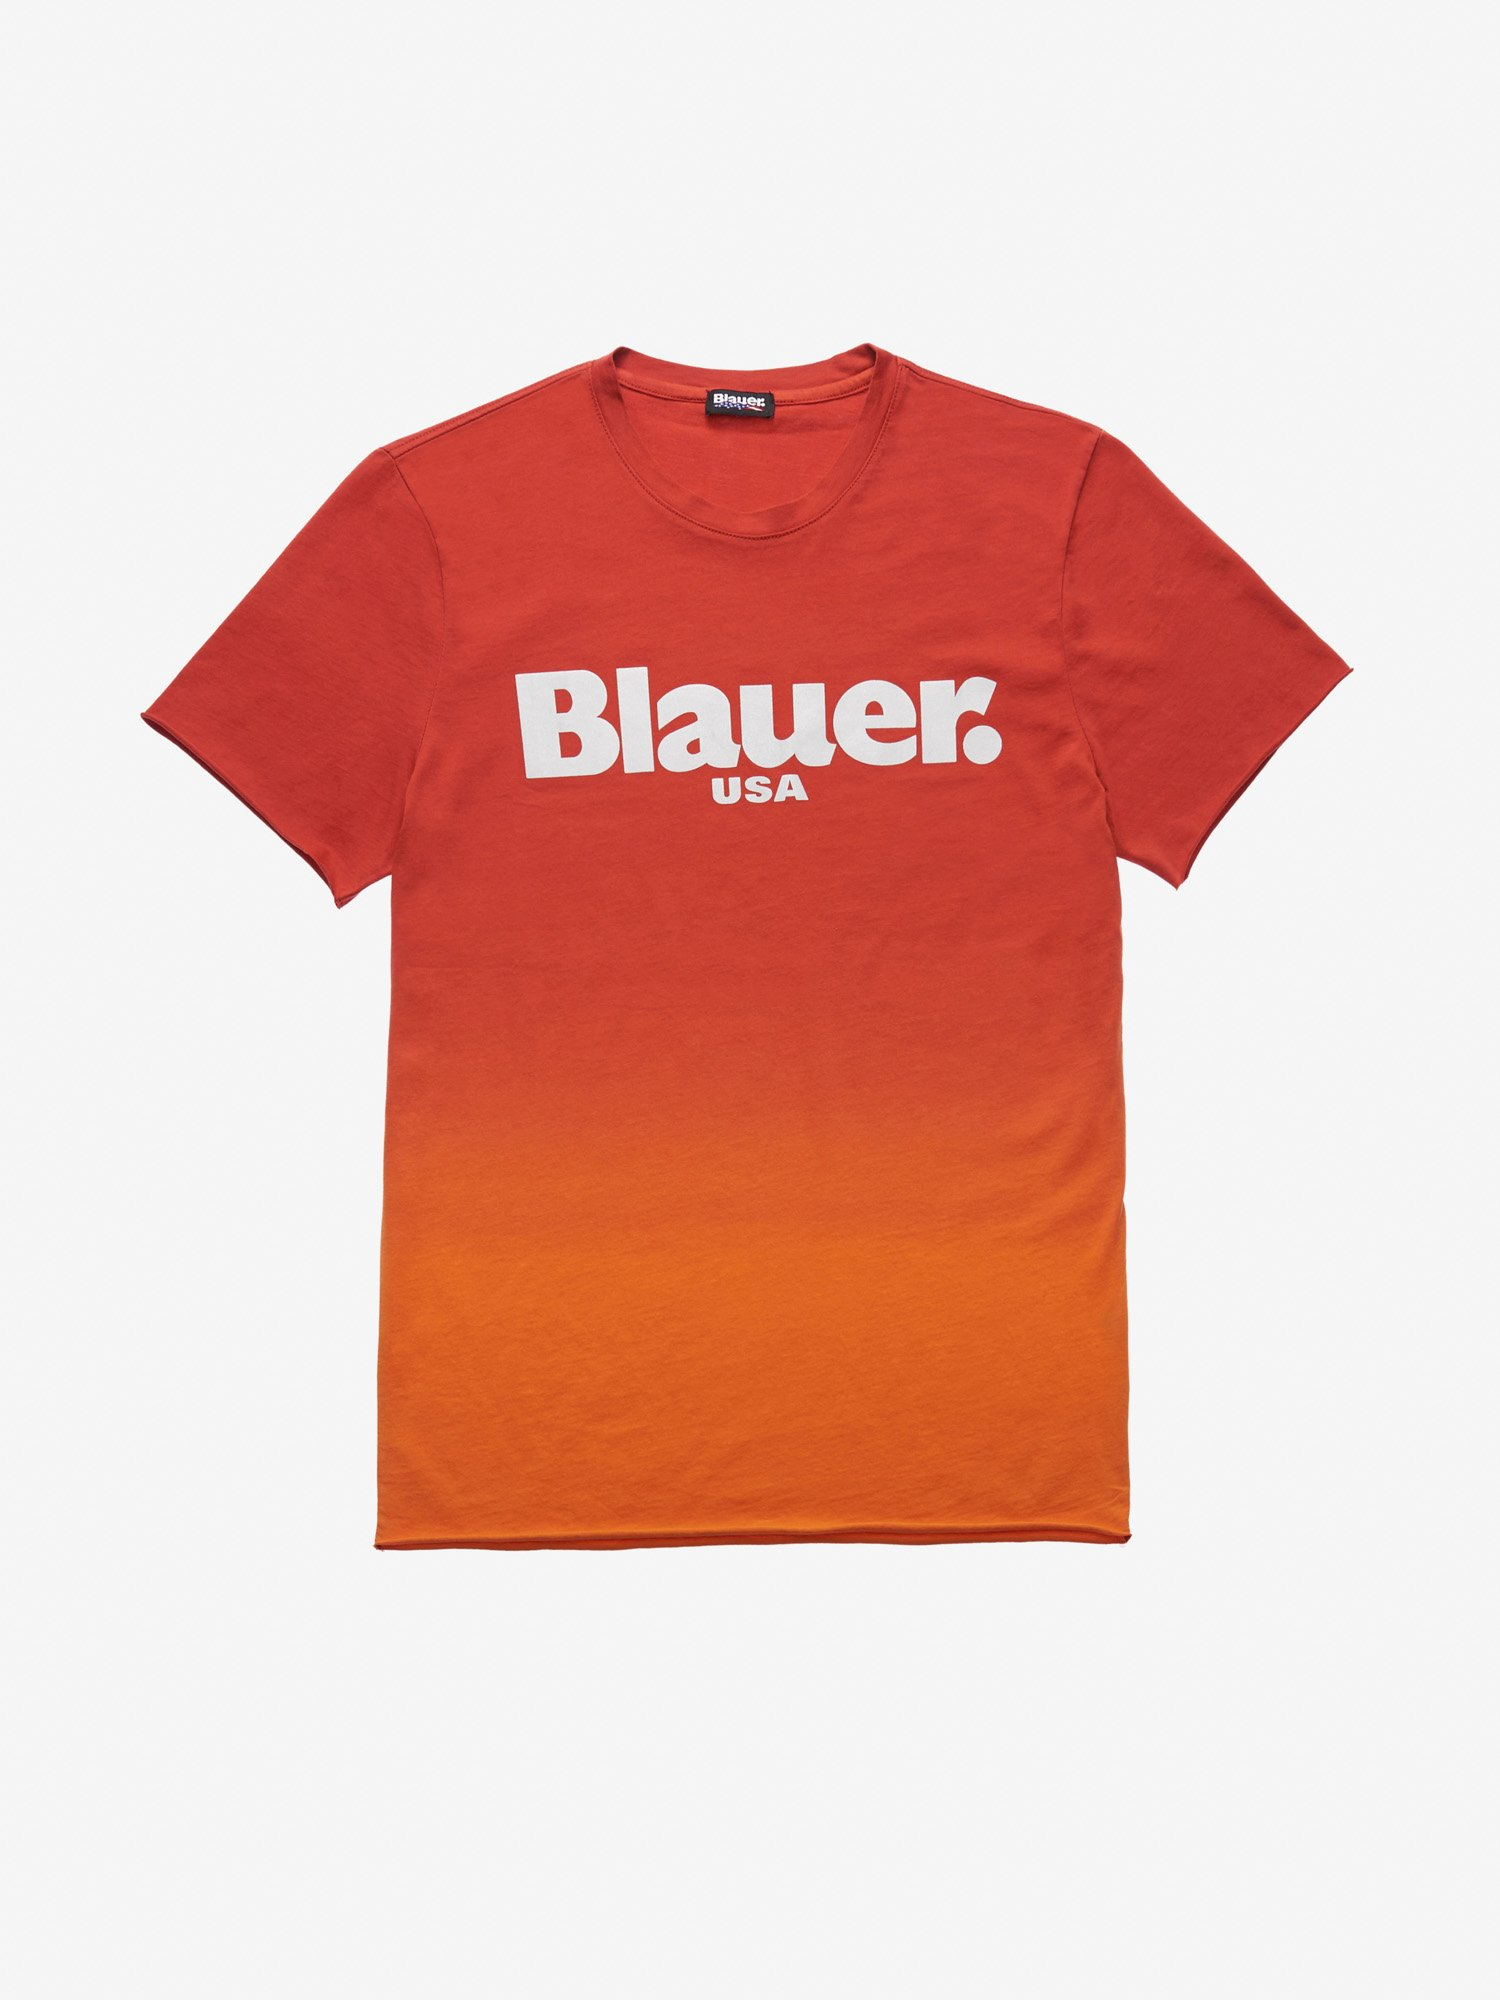 Blauer - SHADED T-SHIRT - Red Ginger - Blauer